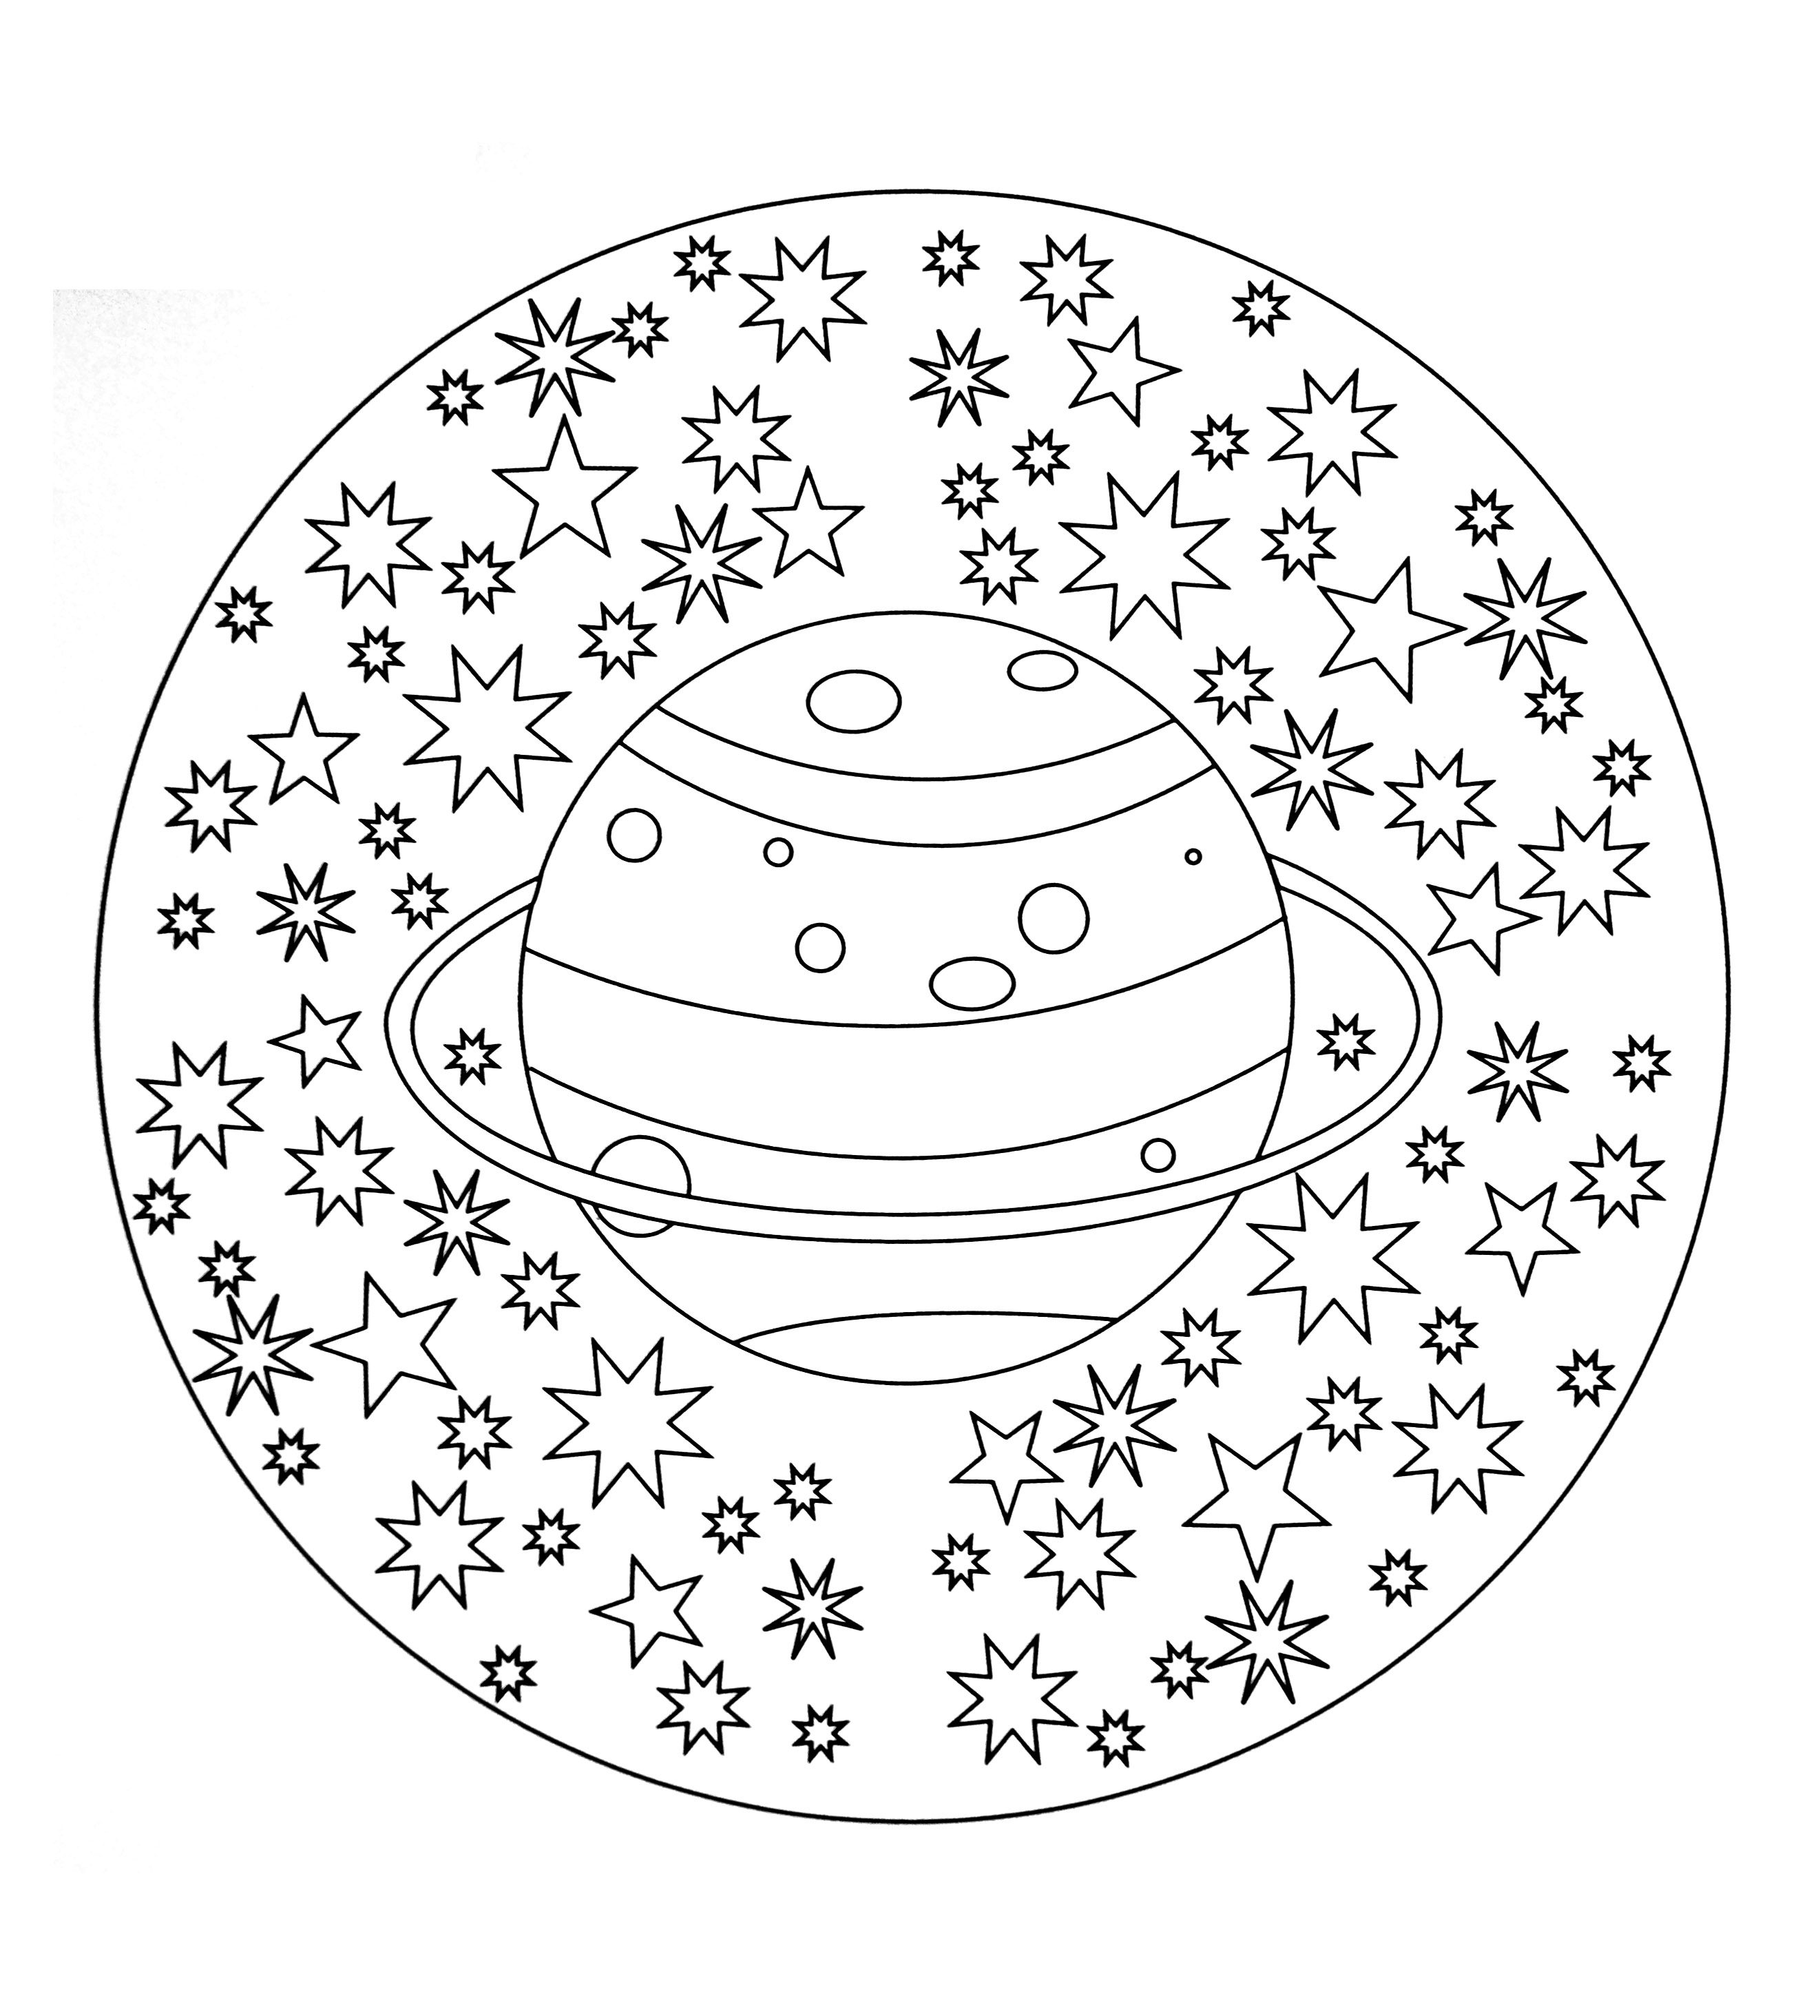 coloring page simple mandala 19 free to print